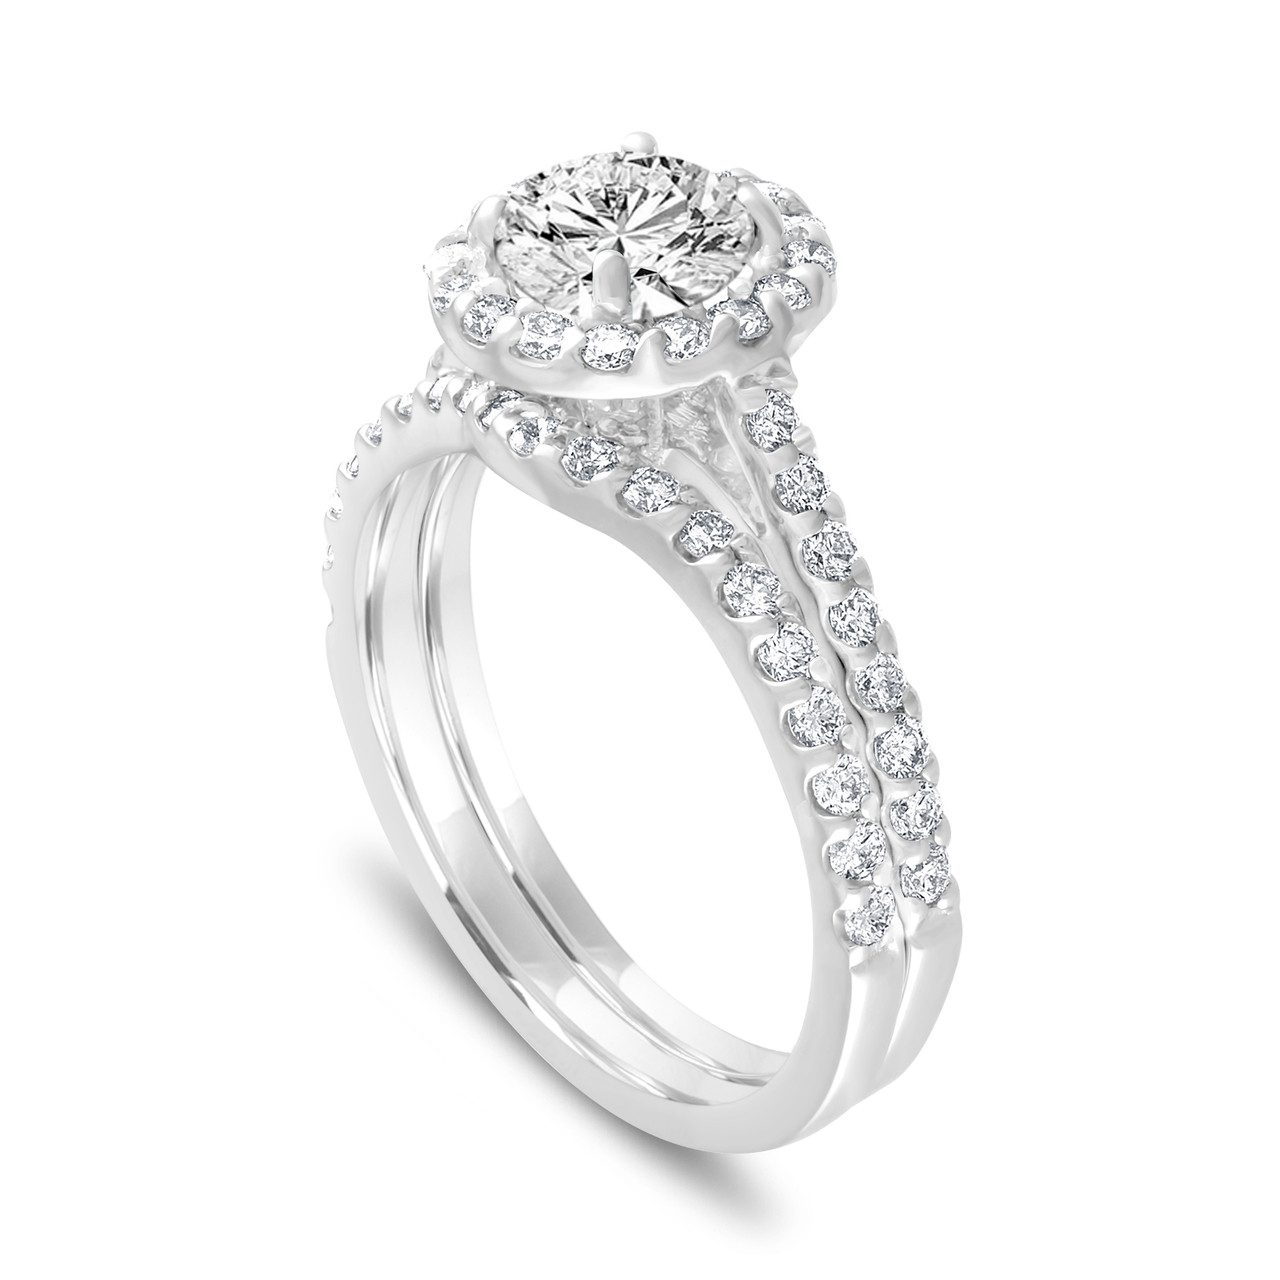 1.84 Carat Diamond Engagement Ring Set, Halo Bridal Ring